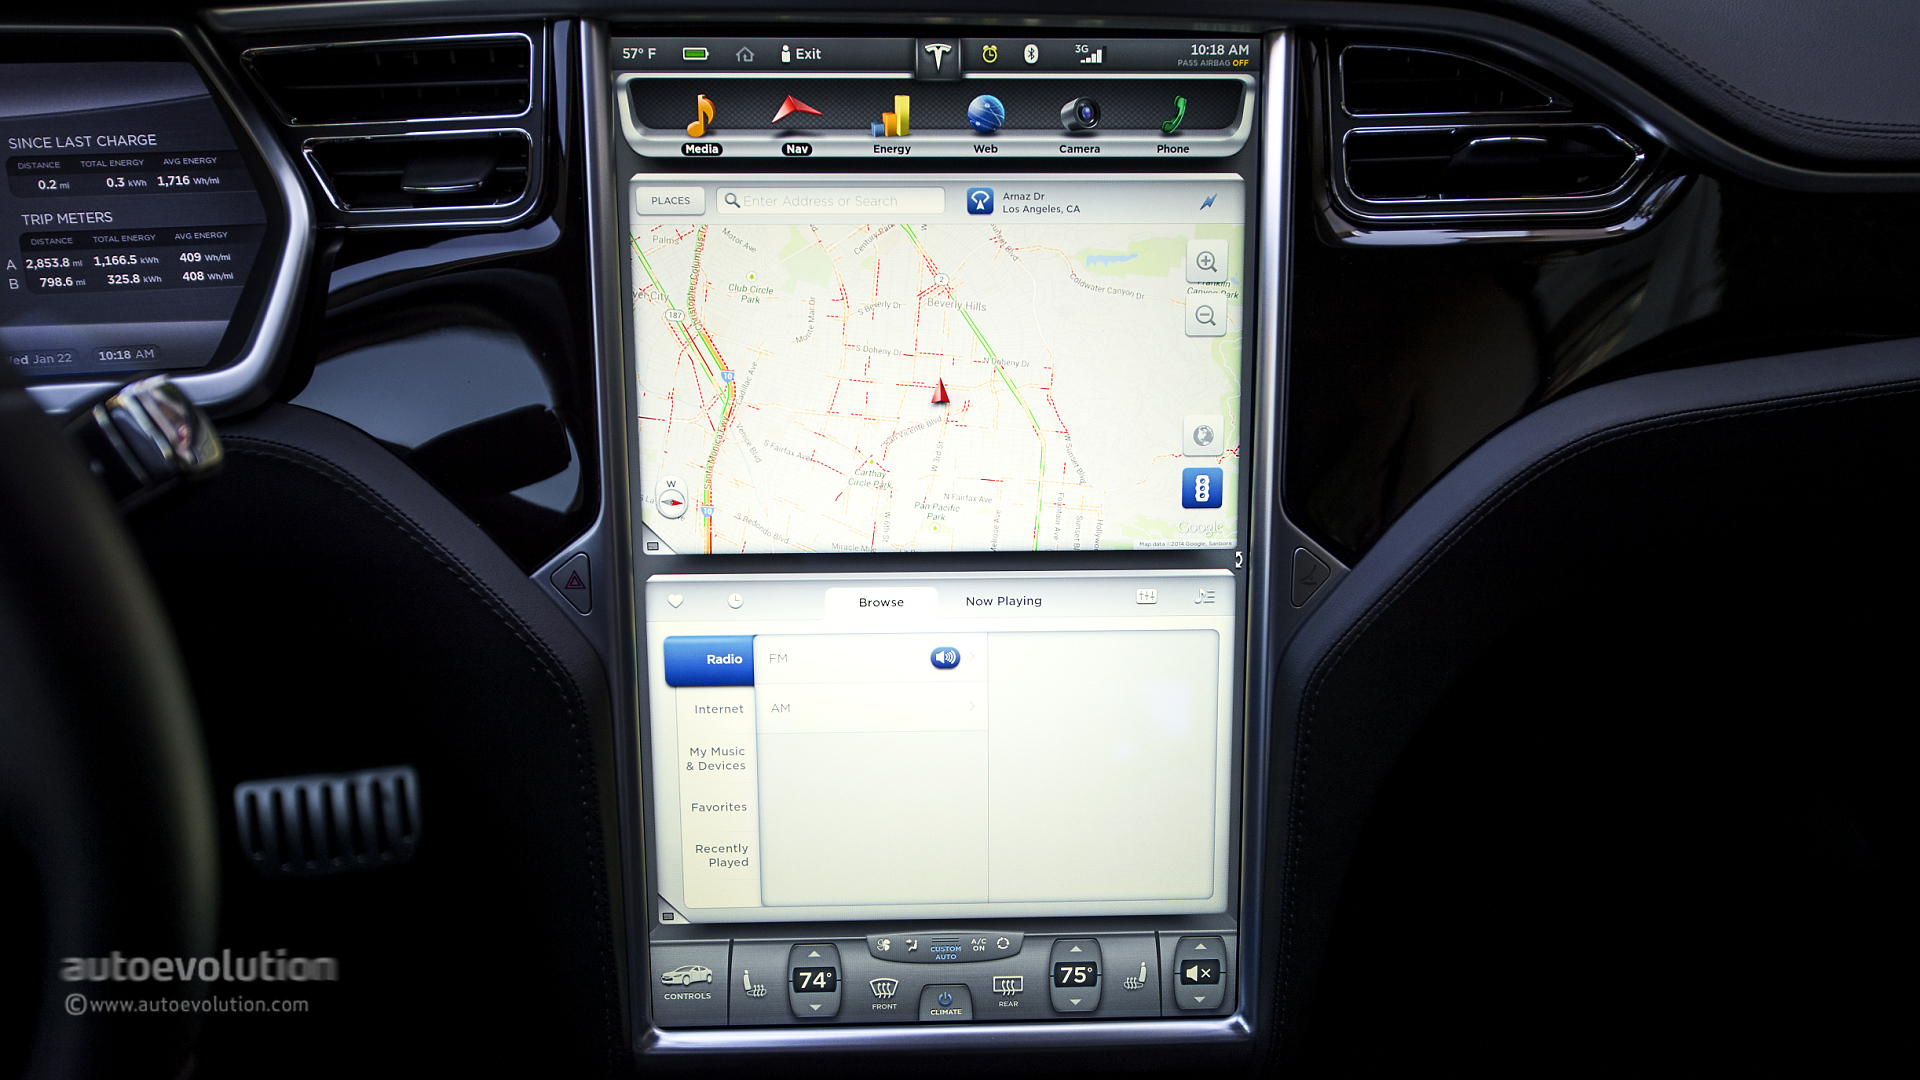 China-Spec Tesla Model S Doesn't Have Sat-Nav, Google Maps ...